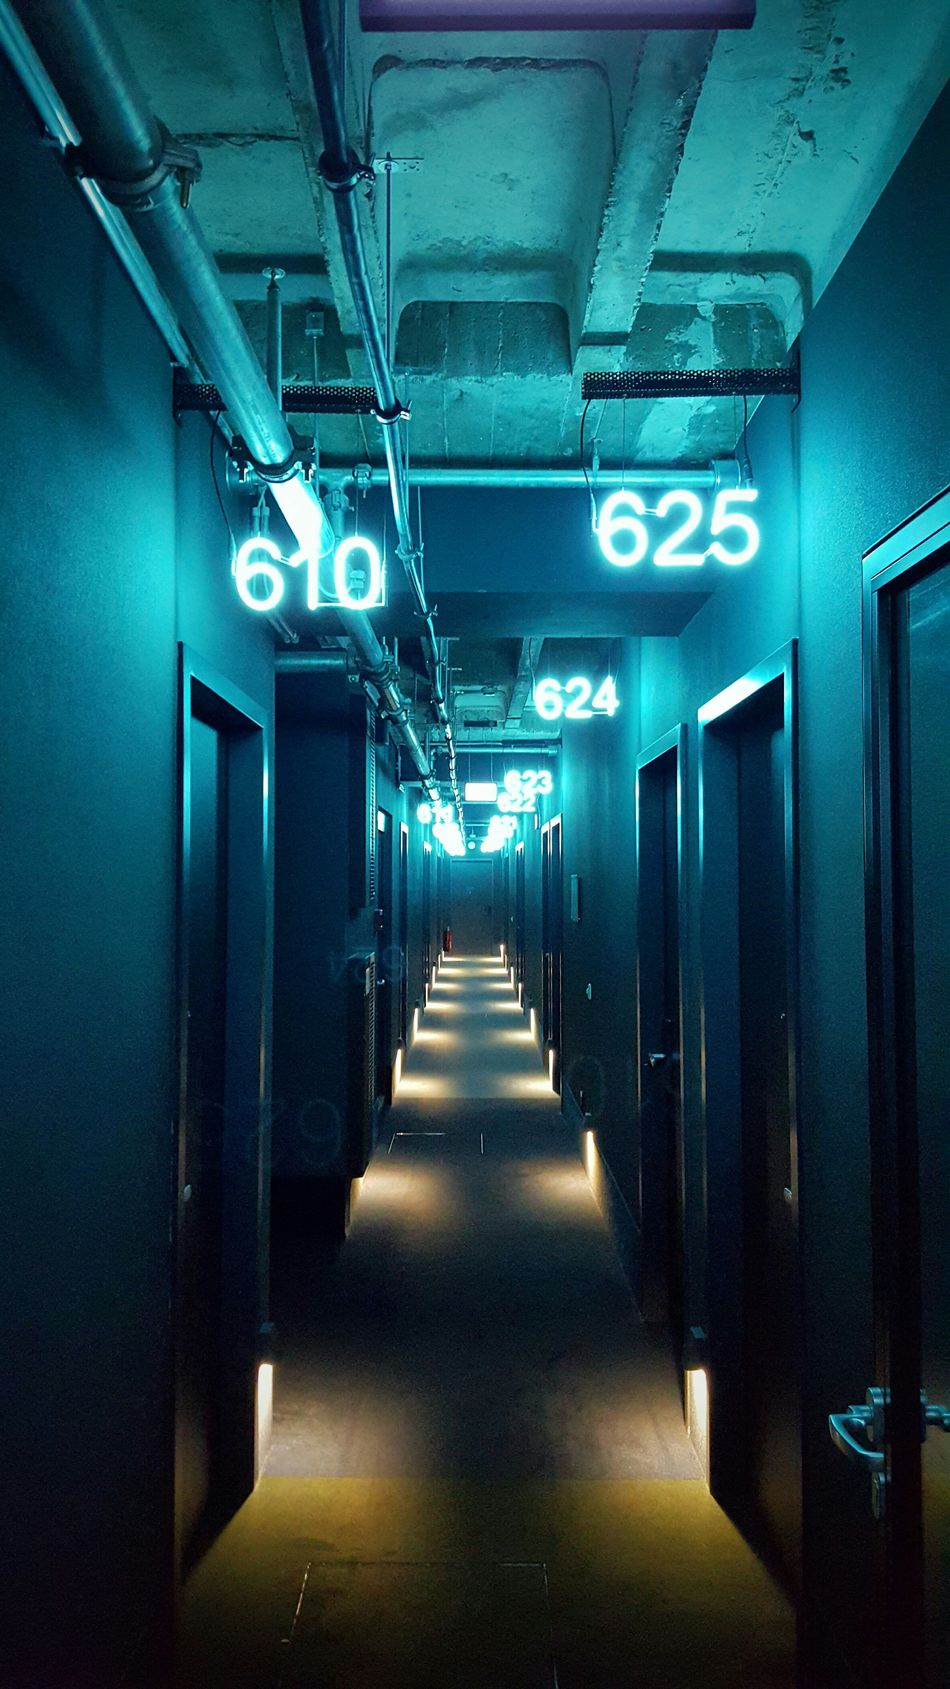 Corridor Hotel Rooms Numbers